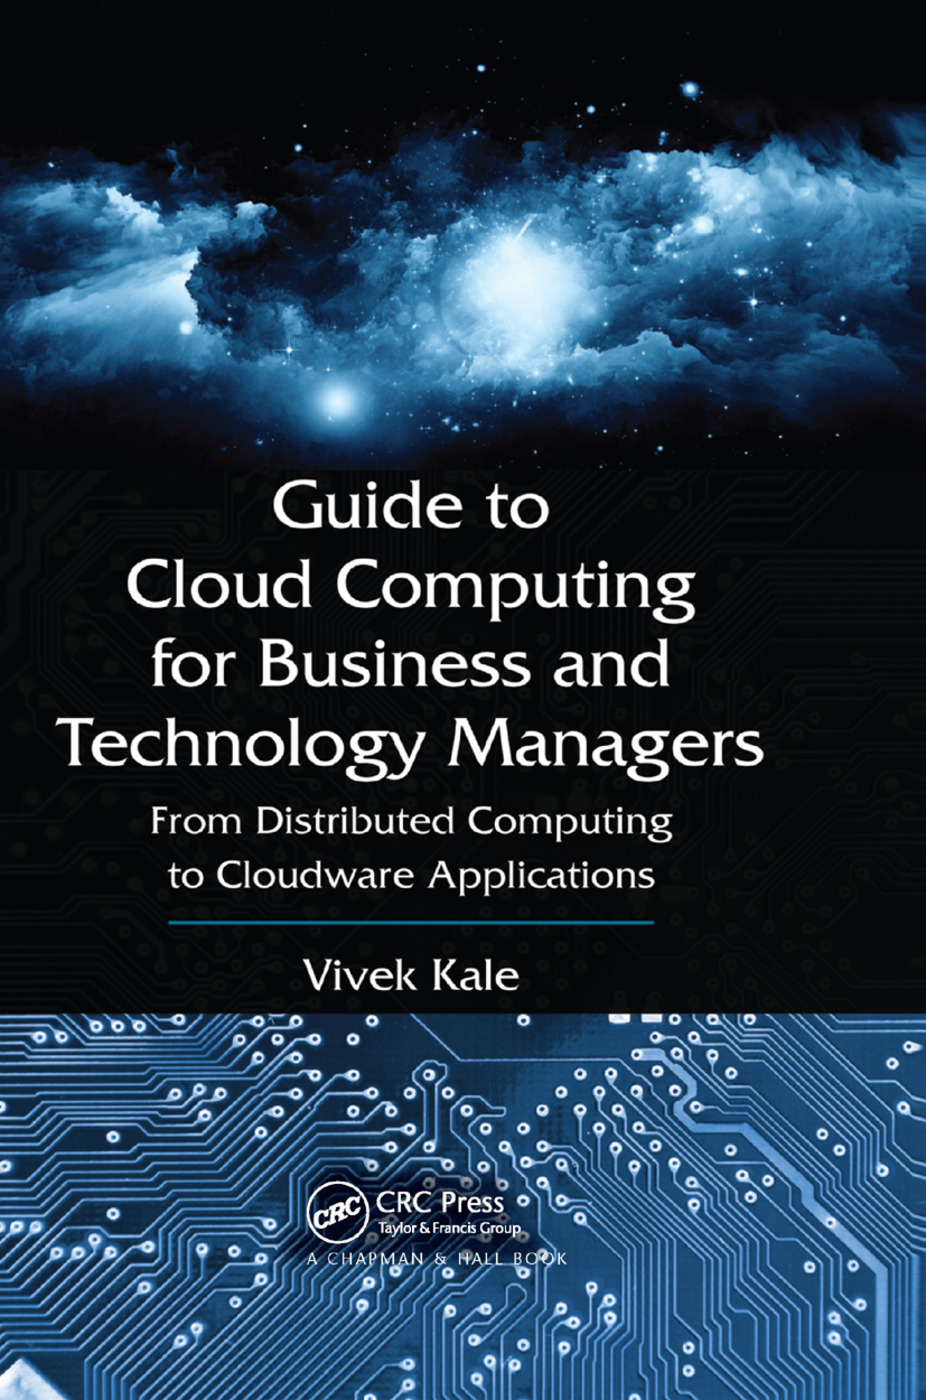 Guide to Cloud Computing for Business and Technology Managers: From Distributed Computing to Cloudware Applications book cover